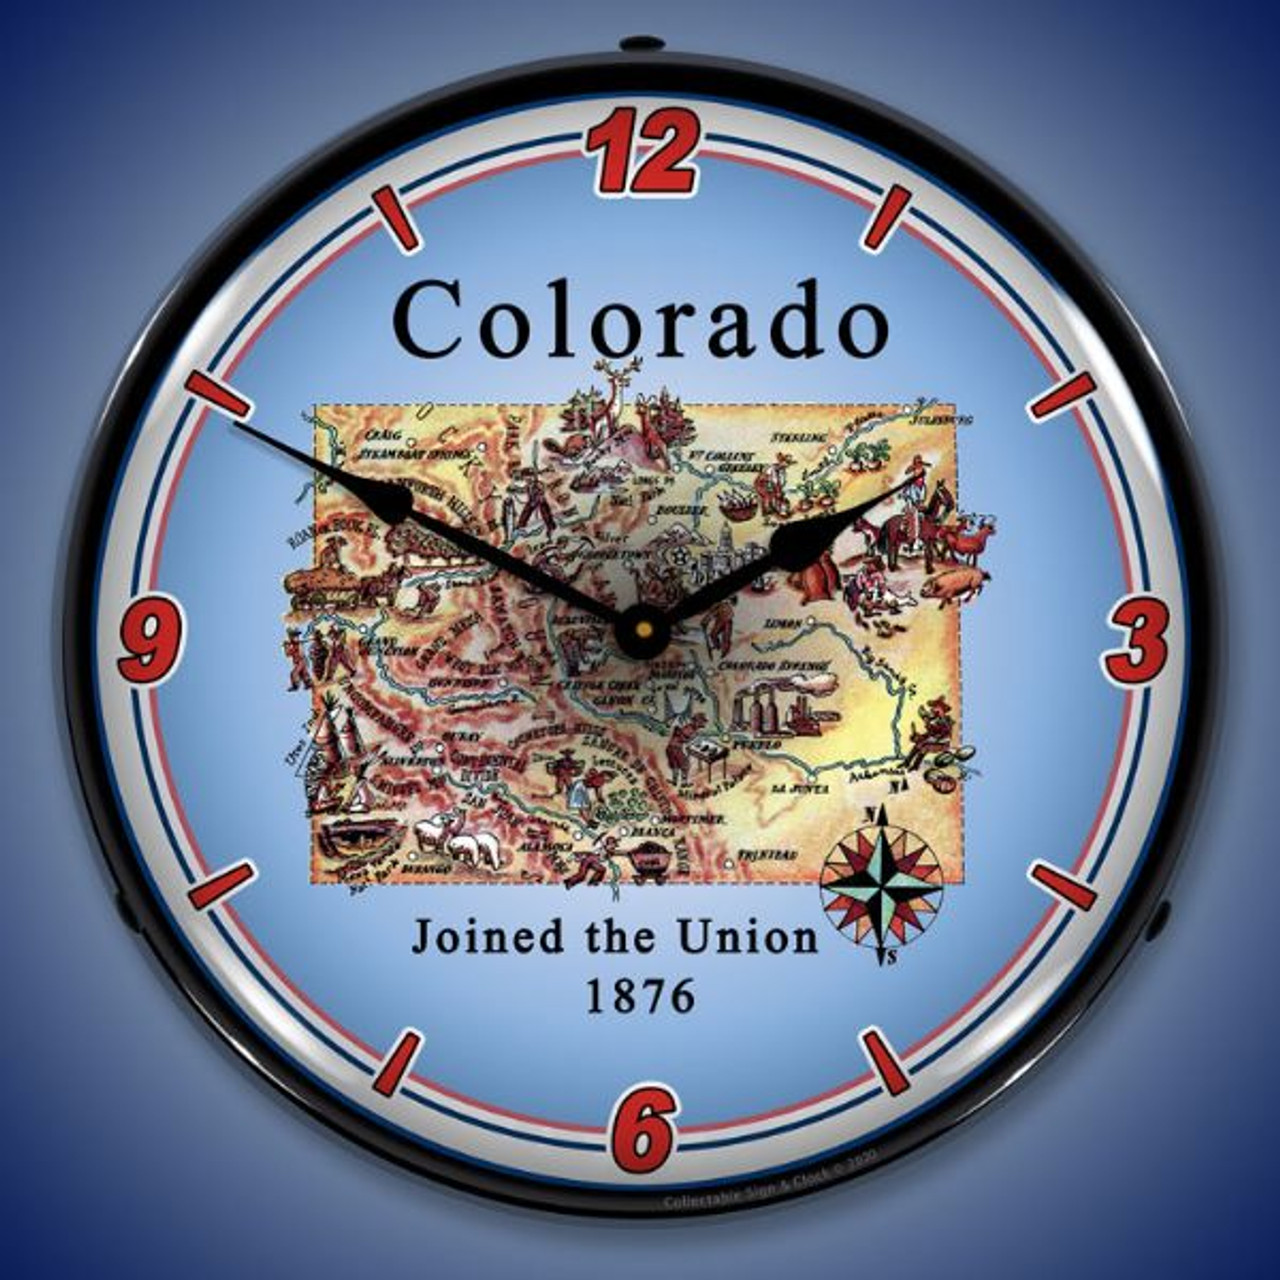 State of Colorado LED Lighted Wall Clock 14 x 14 Inches